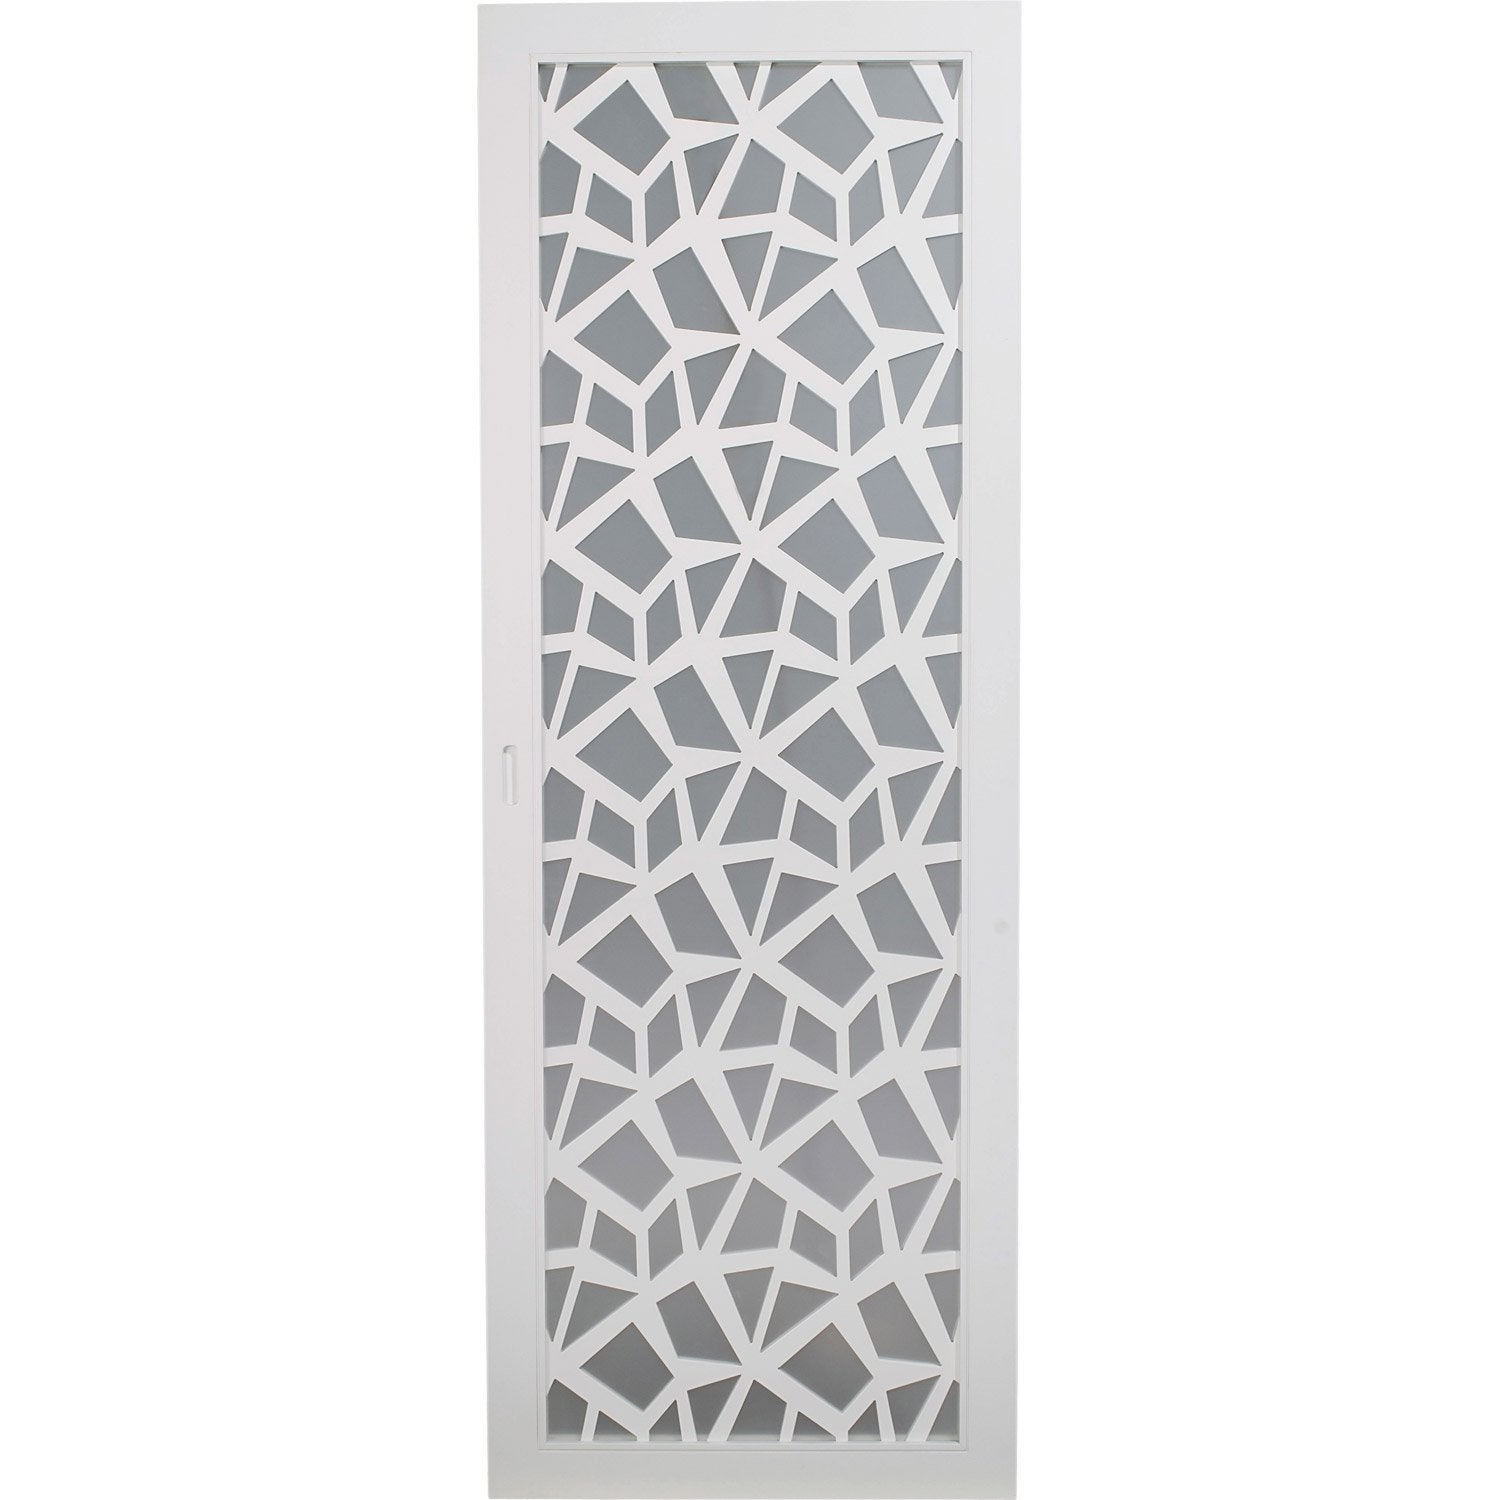 Porte coulissante plaqu blanc crash artens 204 x 73 cm for Porte interieur 73 cm